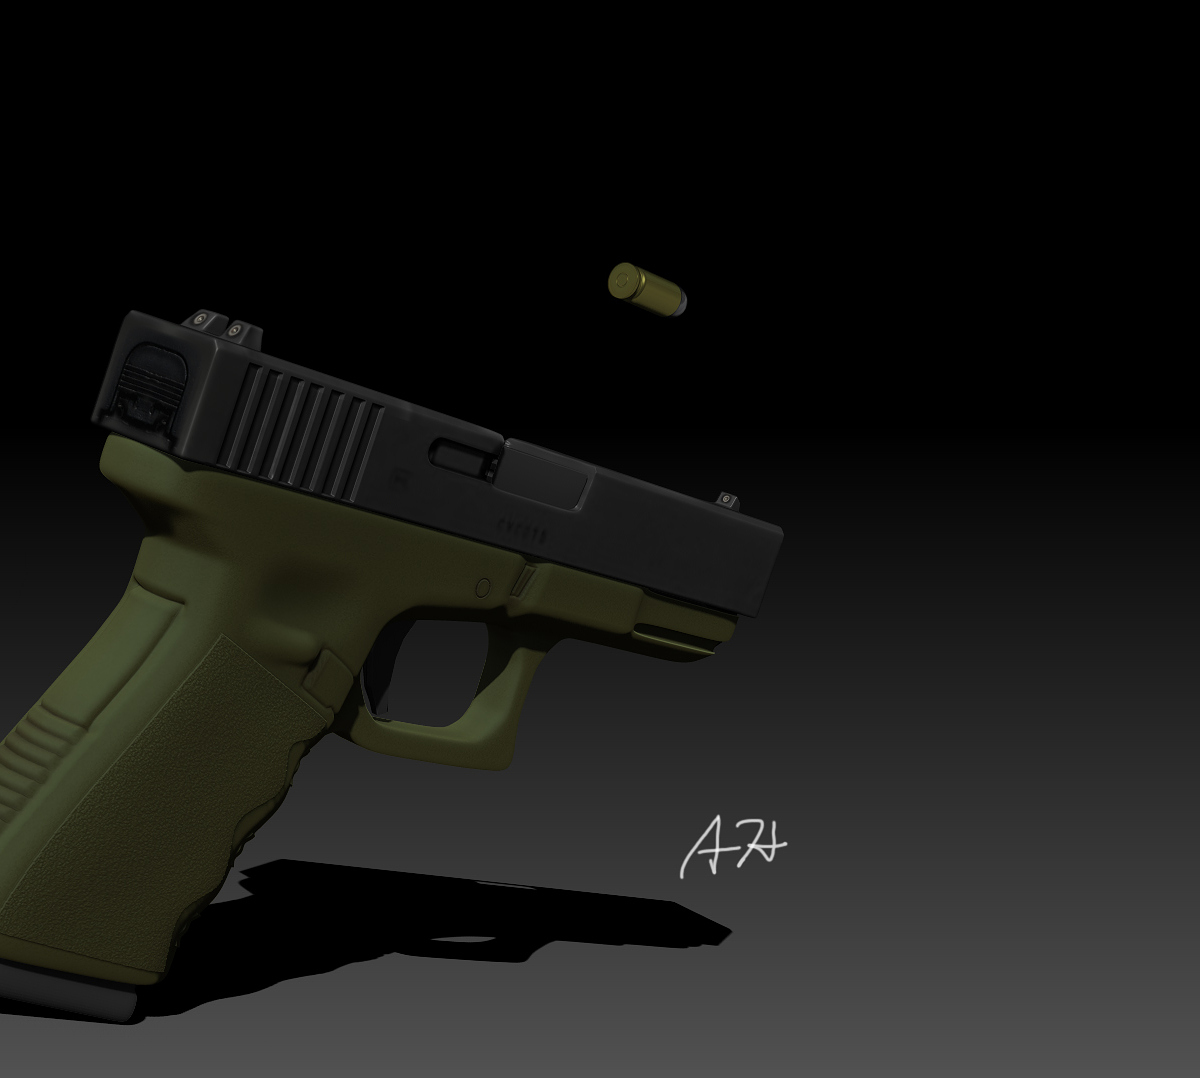 Glock progress5.jpg